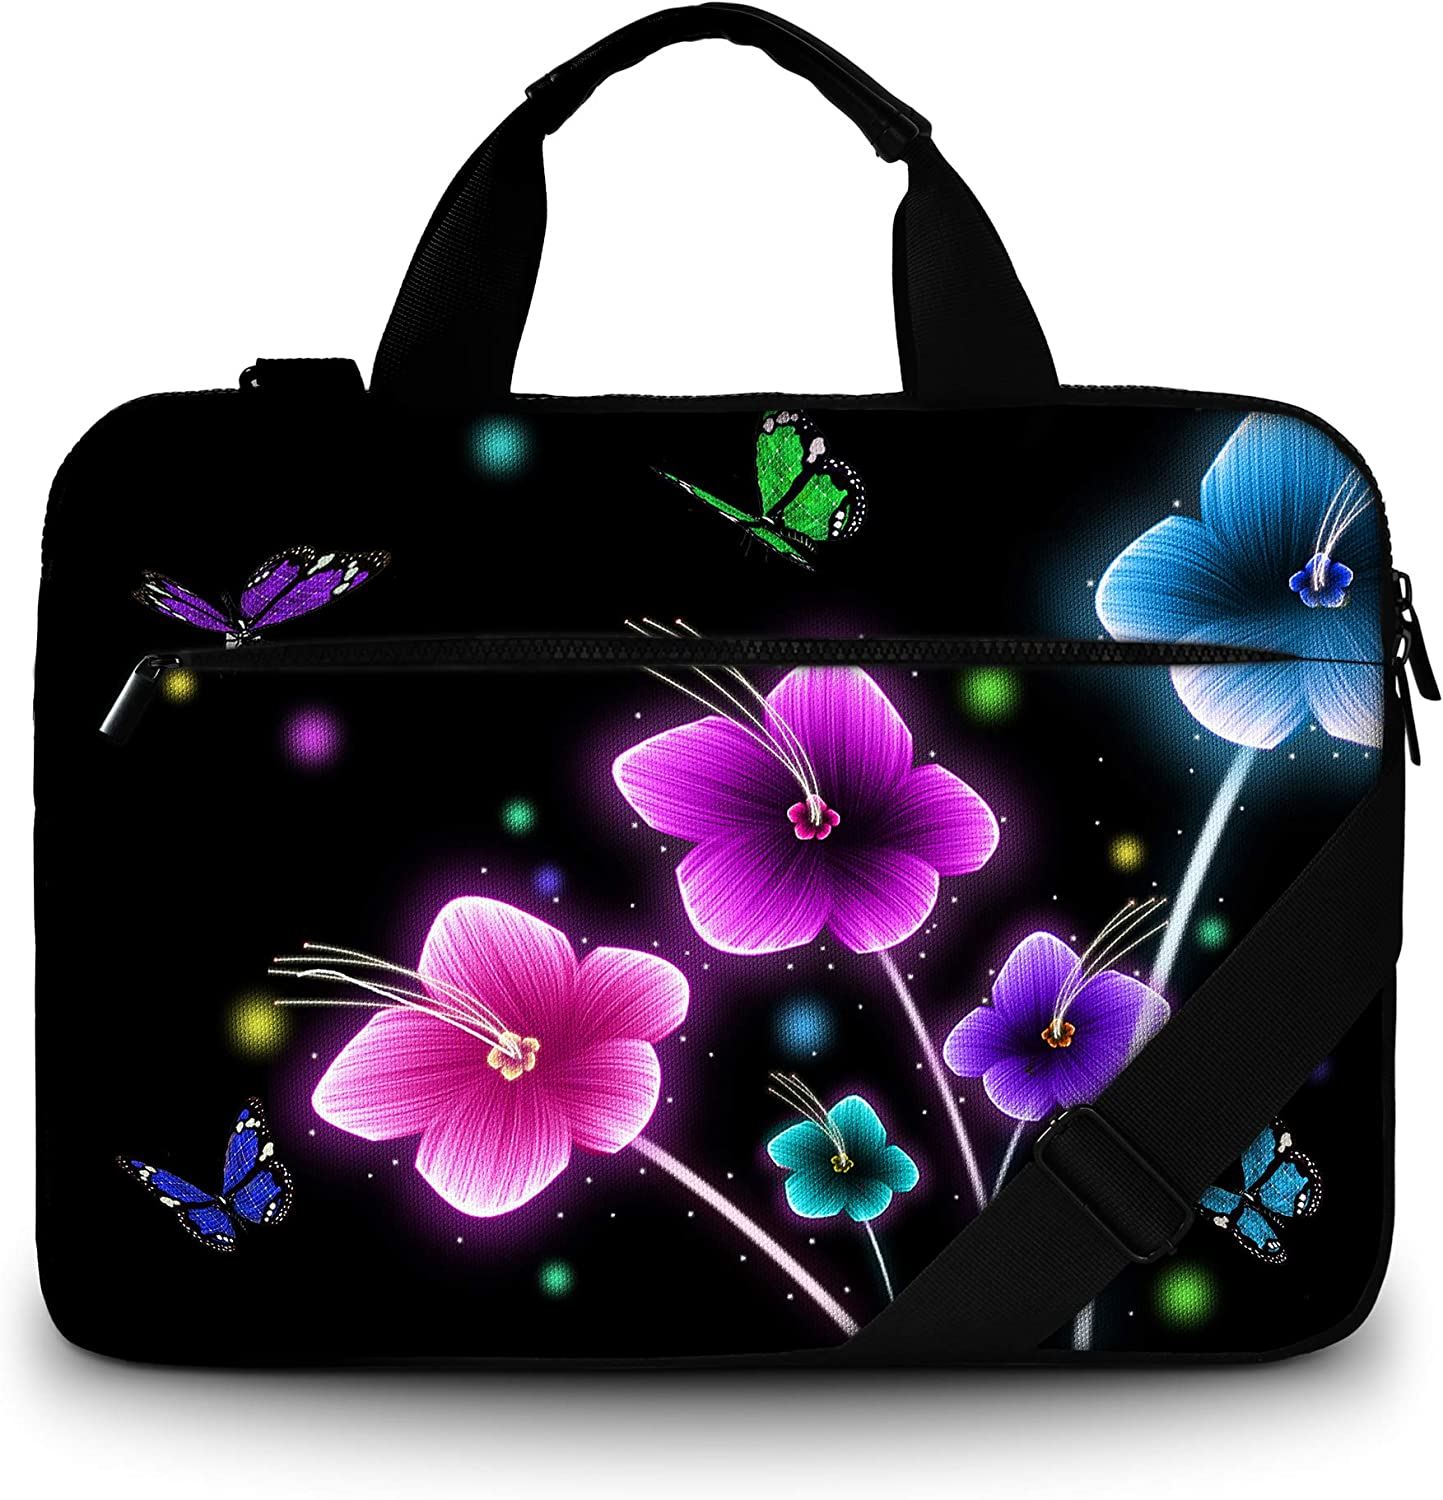 RICHEN Canvas Laptop Shoulder Bag Compatible with 11.6/12/12.9/13 Inches Laptop Netbook,Protective Canvas Carrying Handbag Briefcase Sleeve Case Cover with Side Handle (11-13 inch, Flowers)